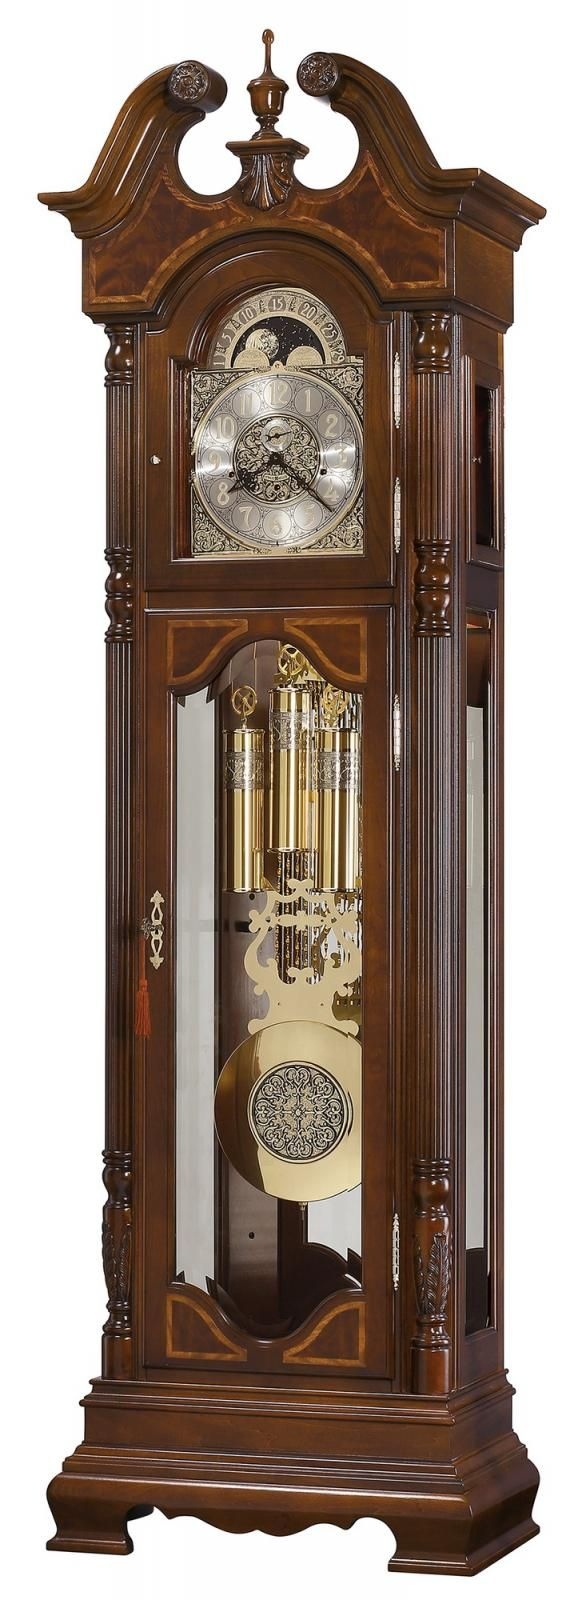 59 best clocks images on pinterest wall clocks outdoor clock clockway howard miller chm4278 mechanical chiming presidential grandfather clock amipublicfo Images